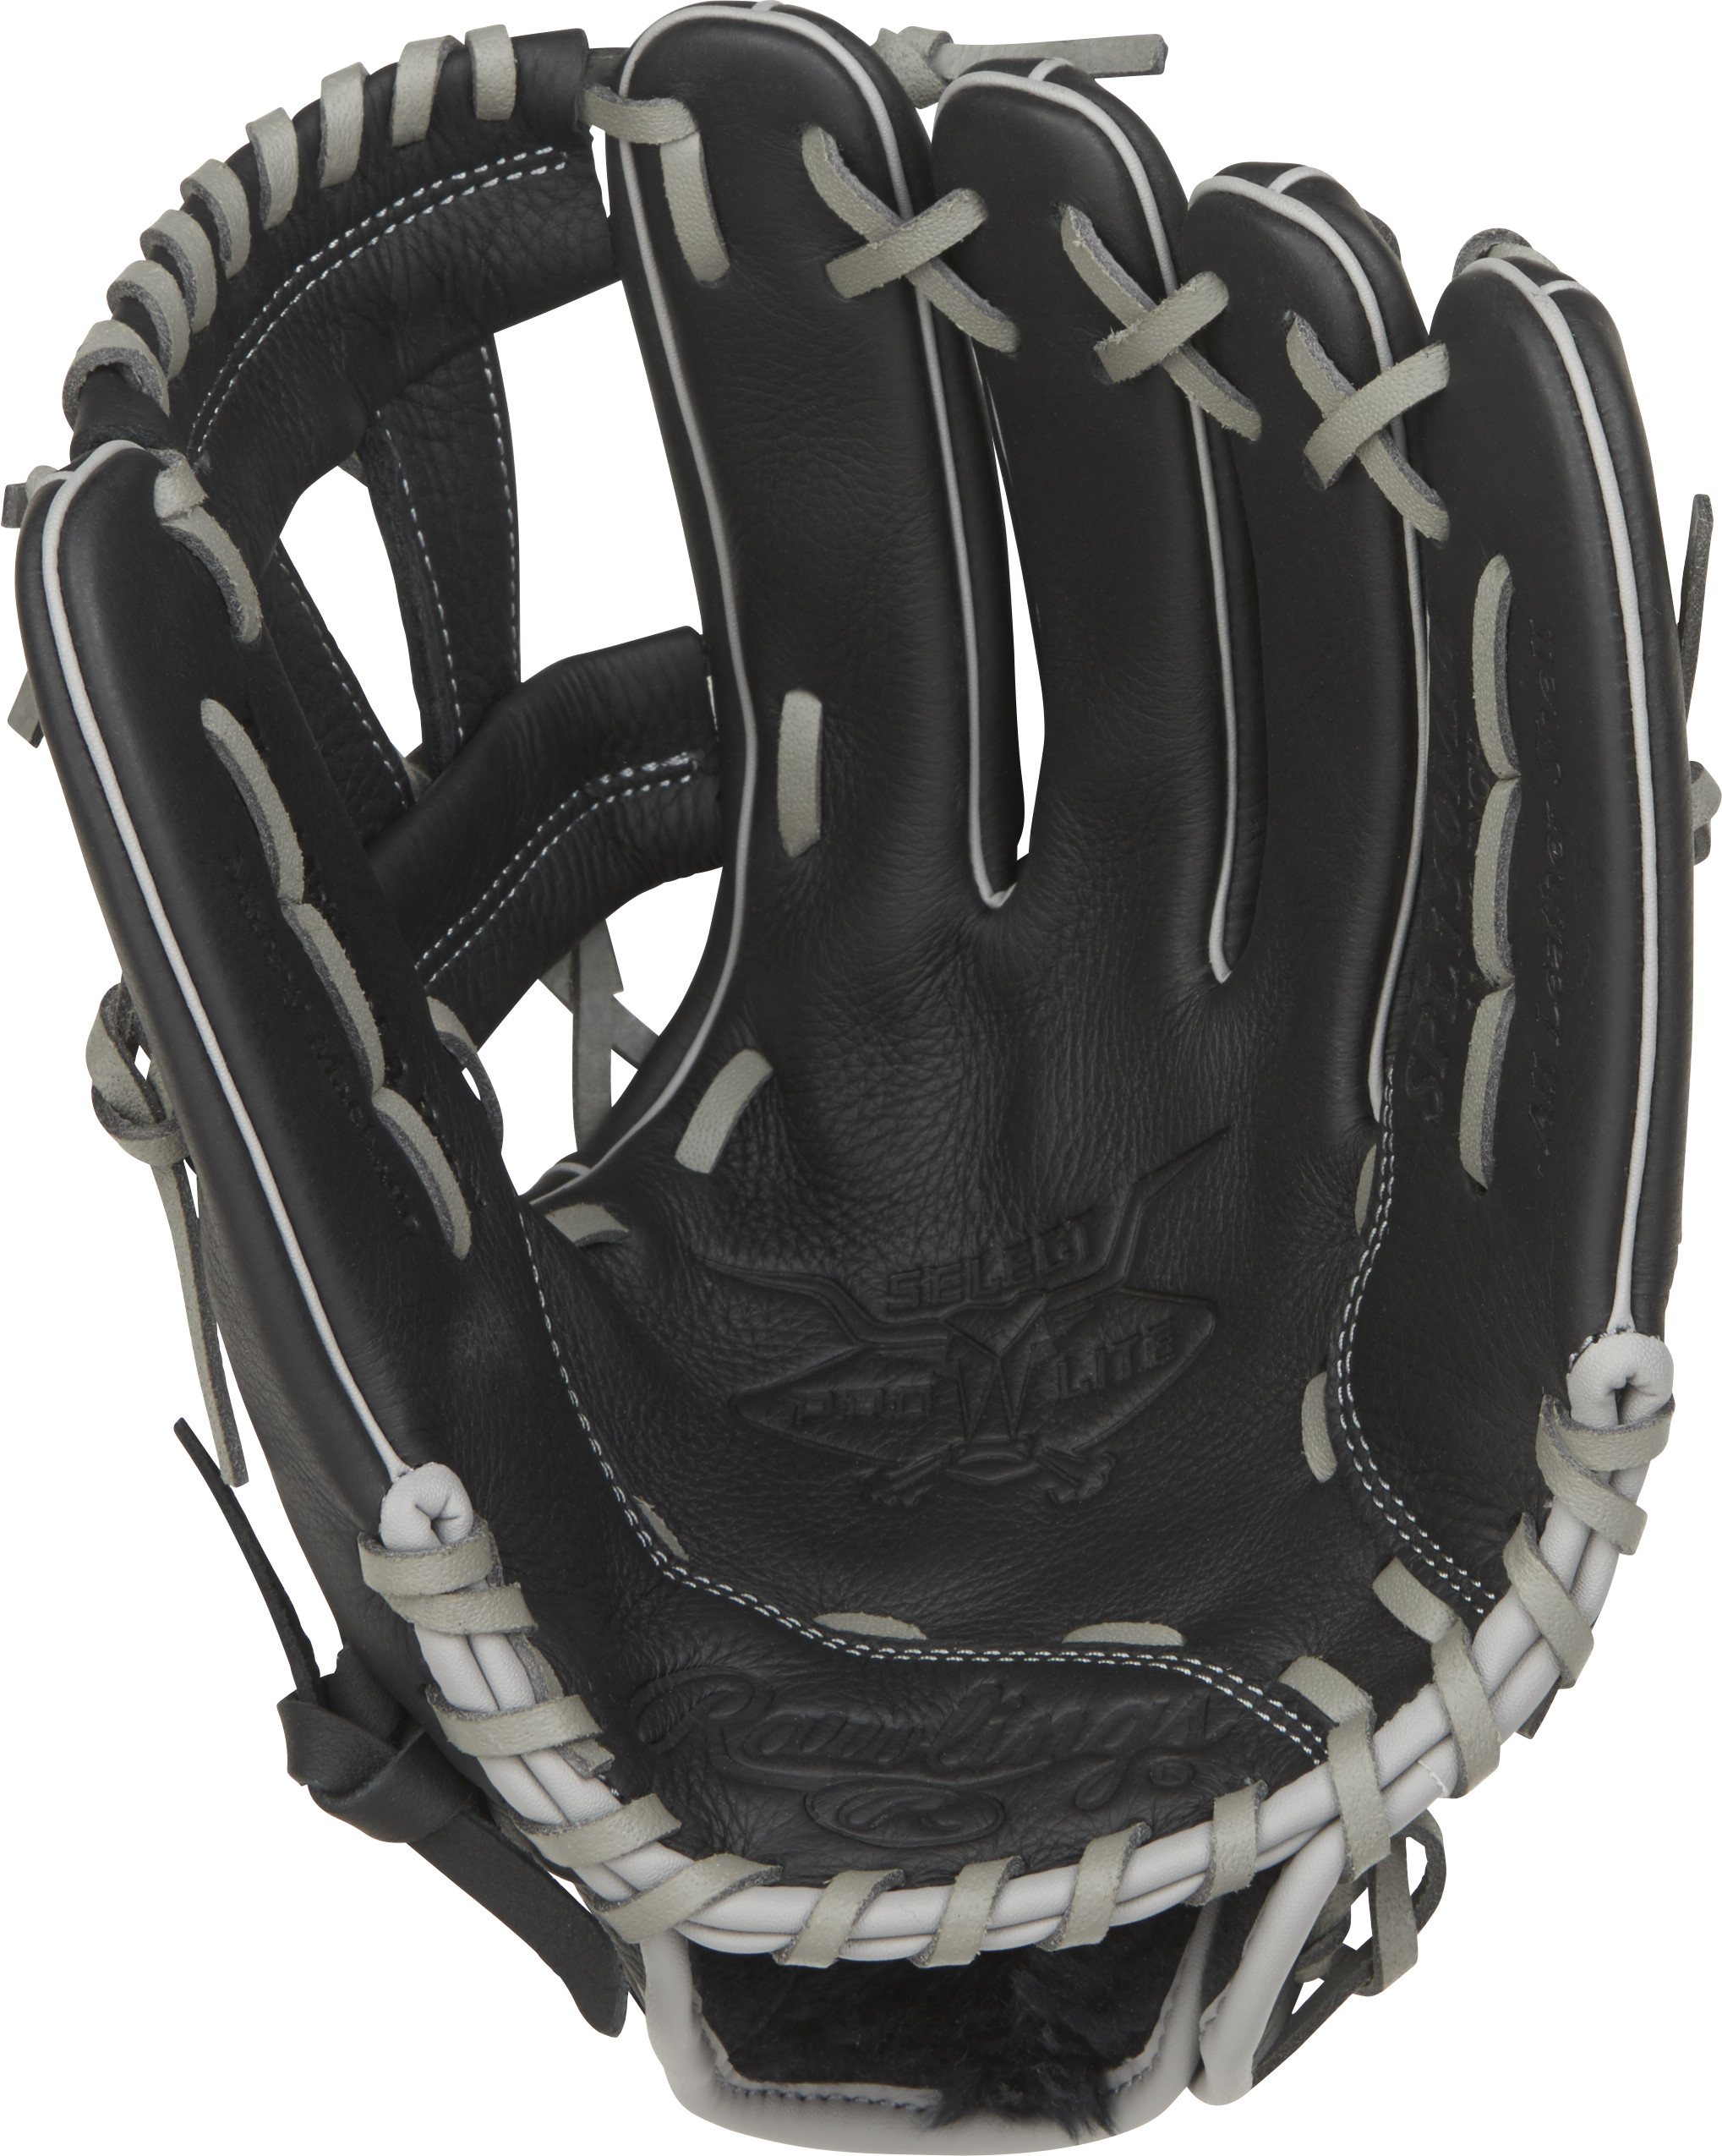 http://www.bestbatdeals.com/images/gloves/rawlings/SPL150MM-1.jpg